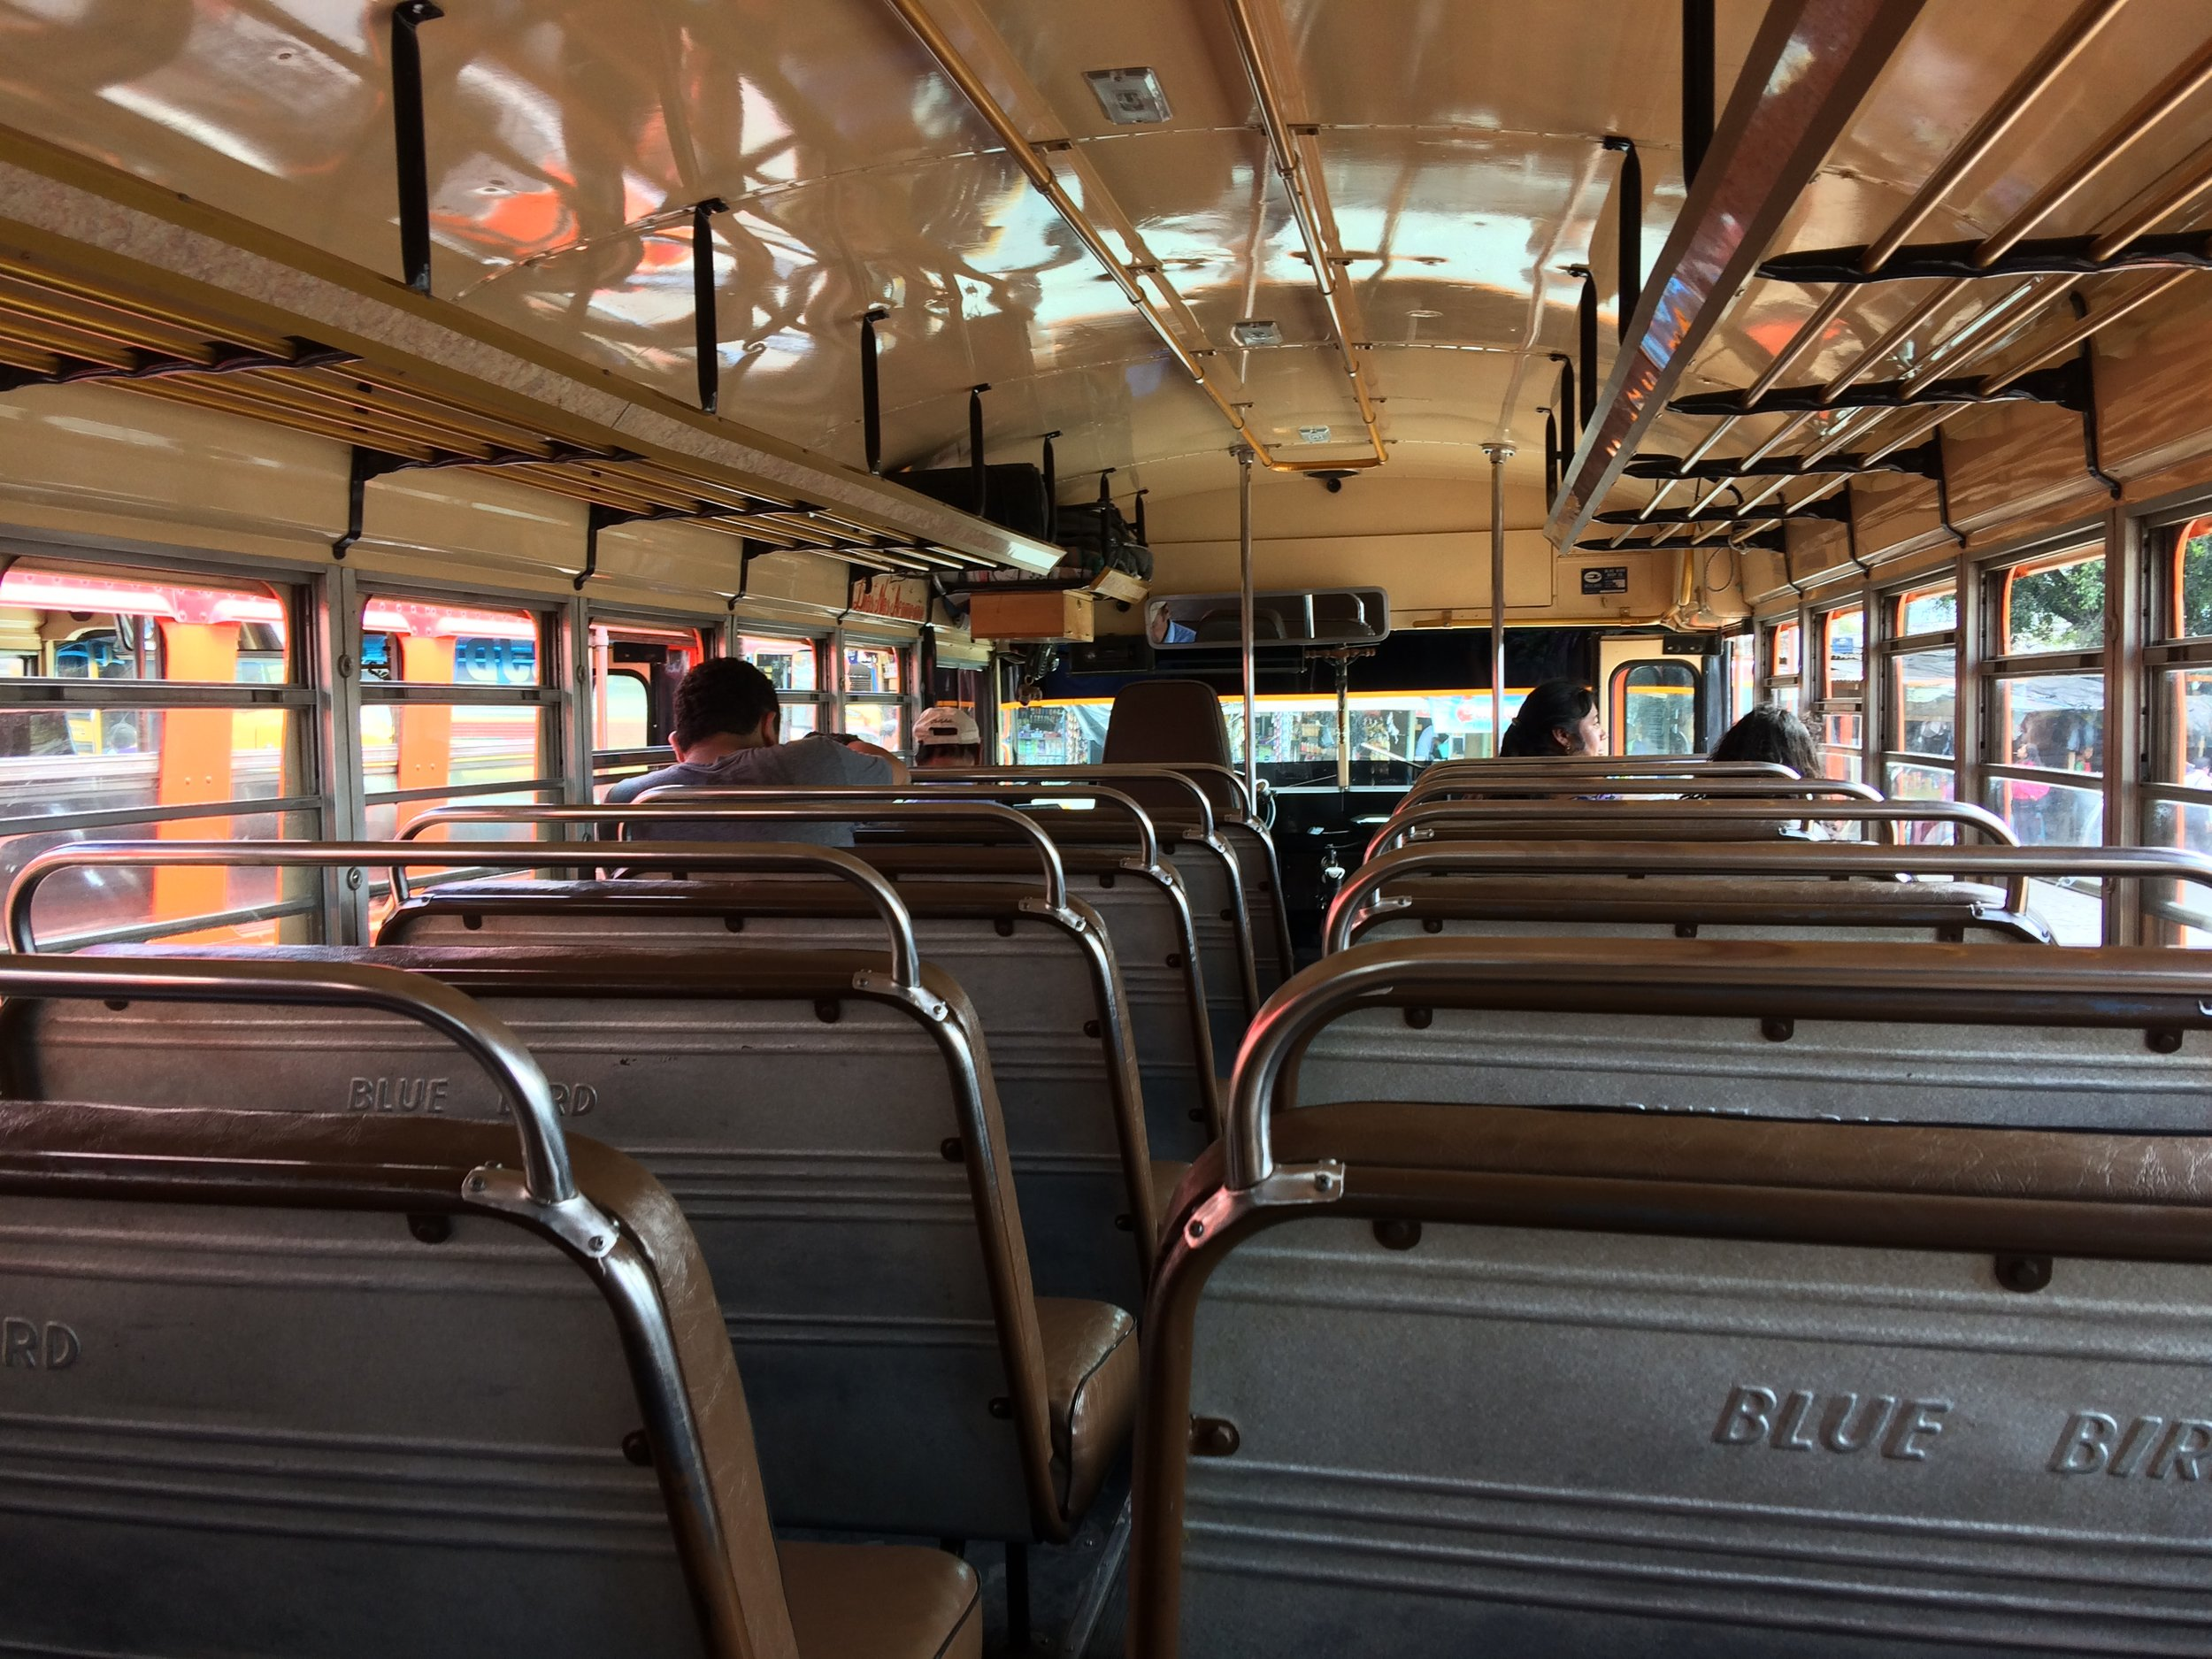 This is an empty chicken bus looks like. Take a good look because you'll never see it again.